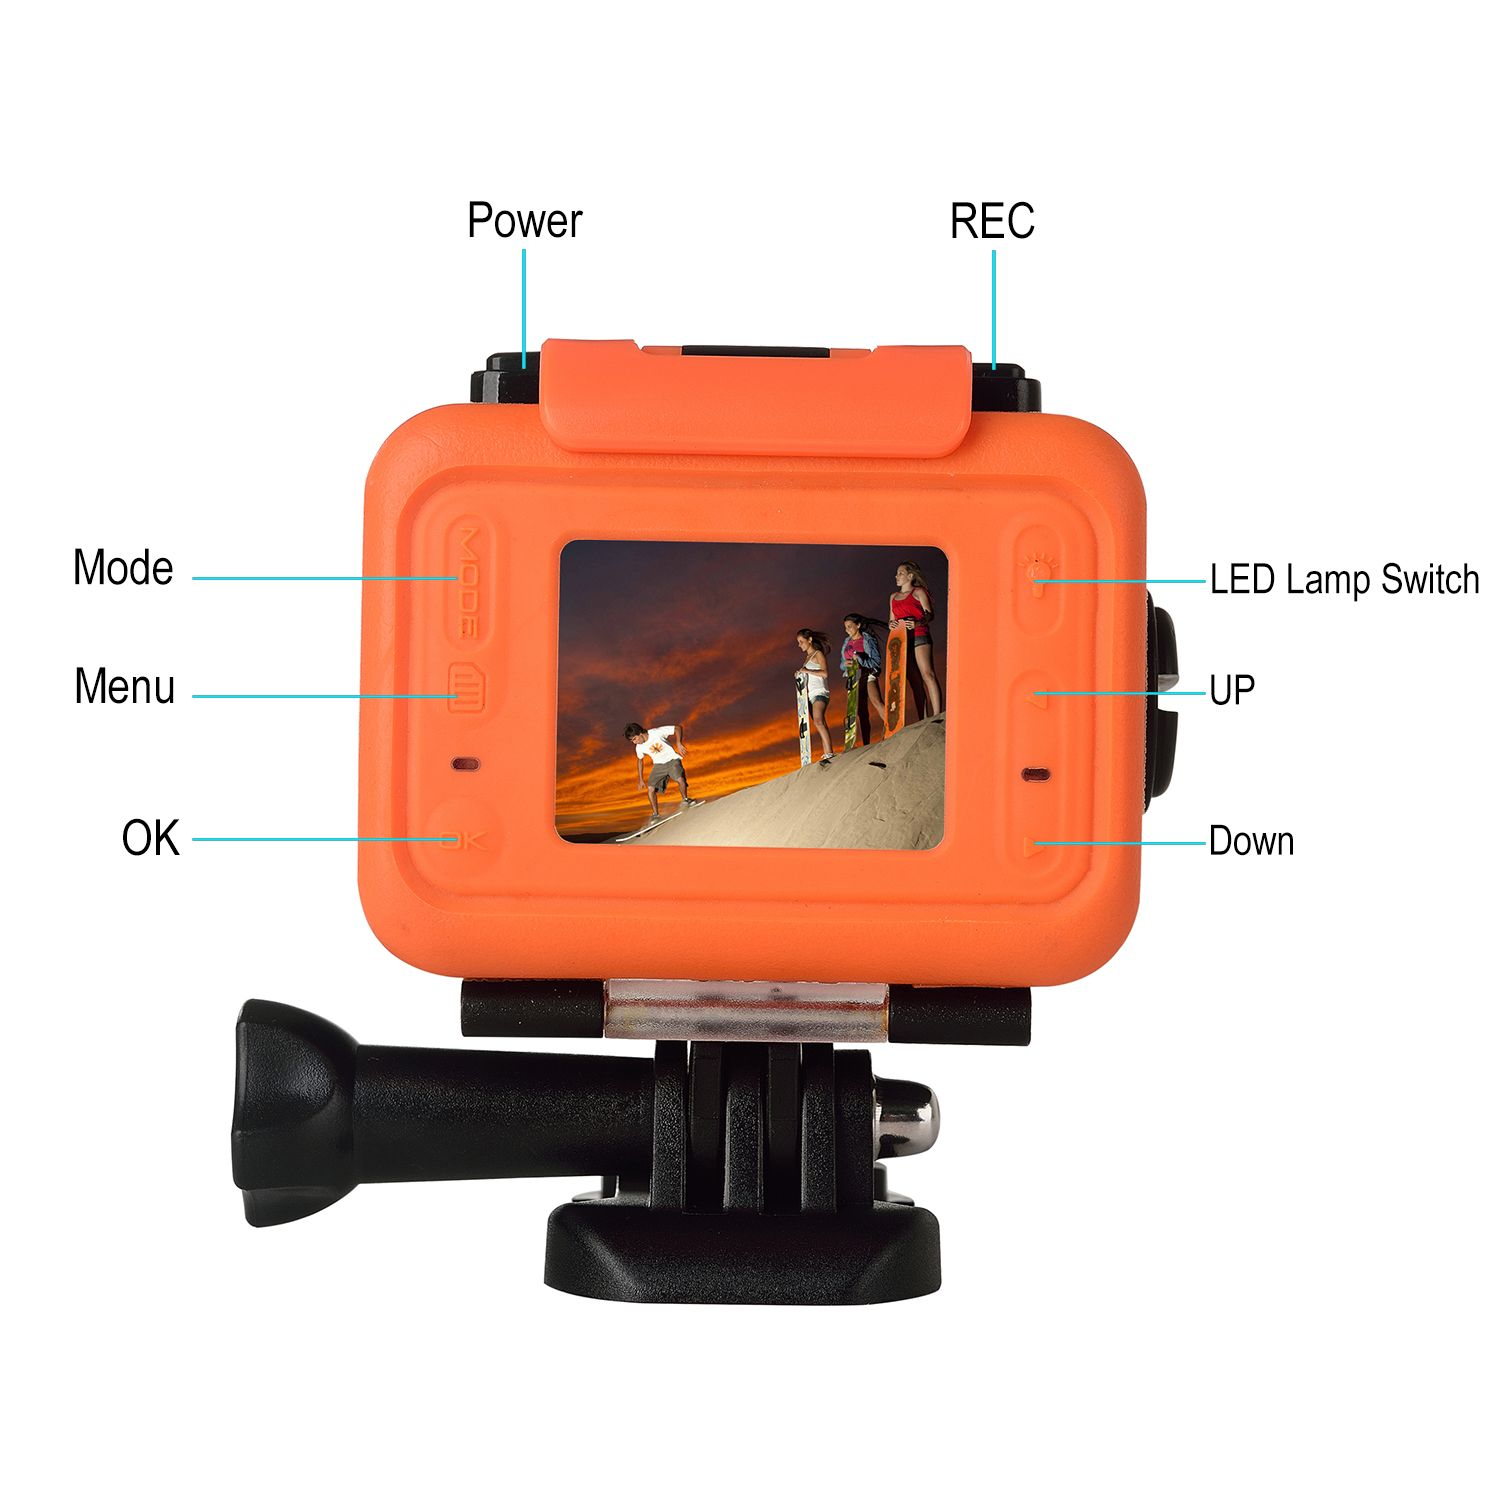 SOOCOO S70 Action Camera